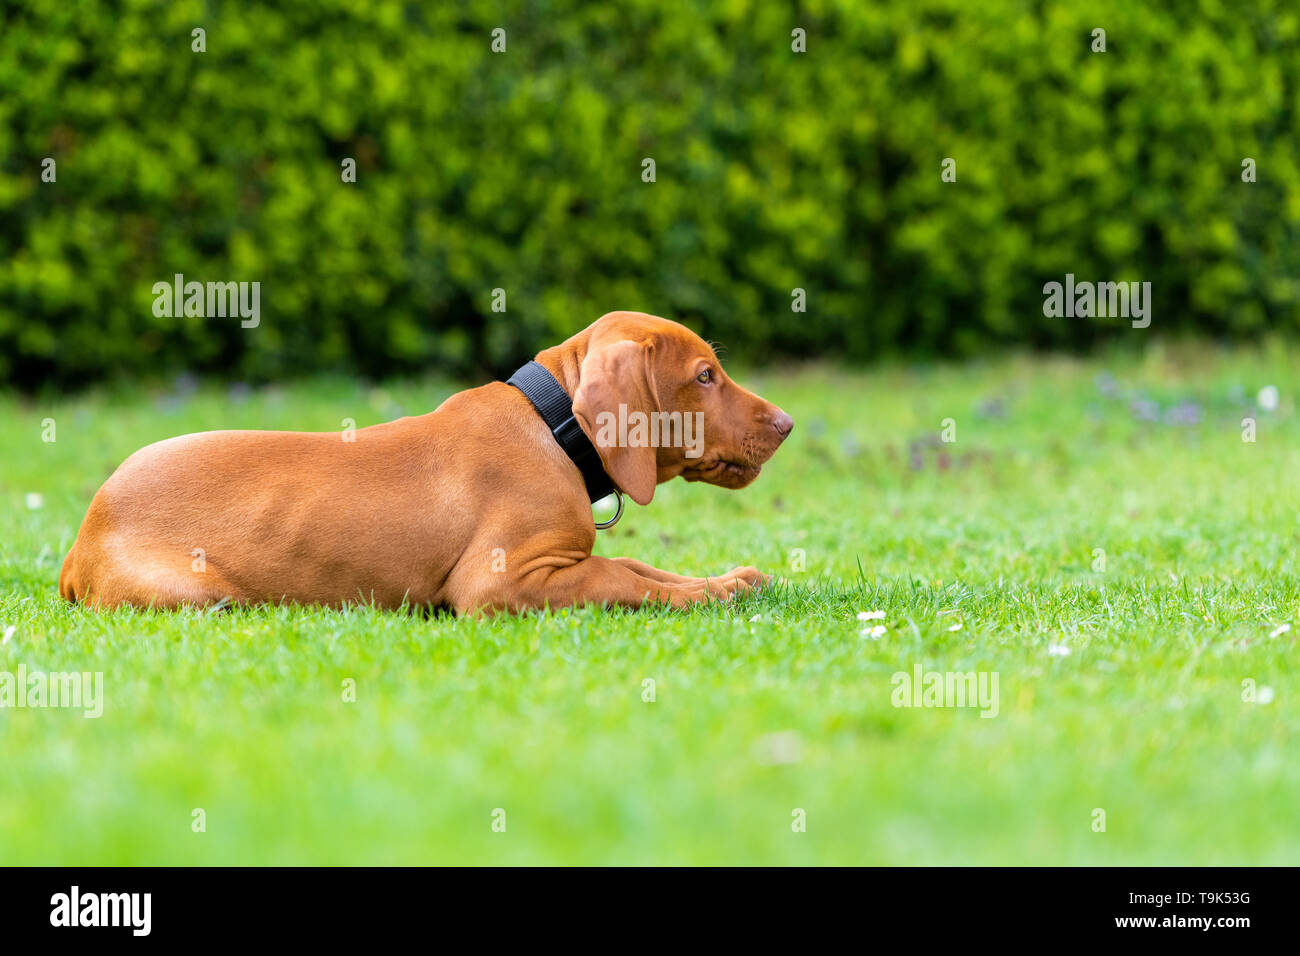 Obedience training. Vizsla puppy learning the Lie down Command. Cute Hungarian Vizsla puppy laying down on lawn. - Stock Image